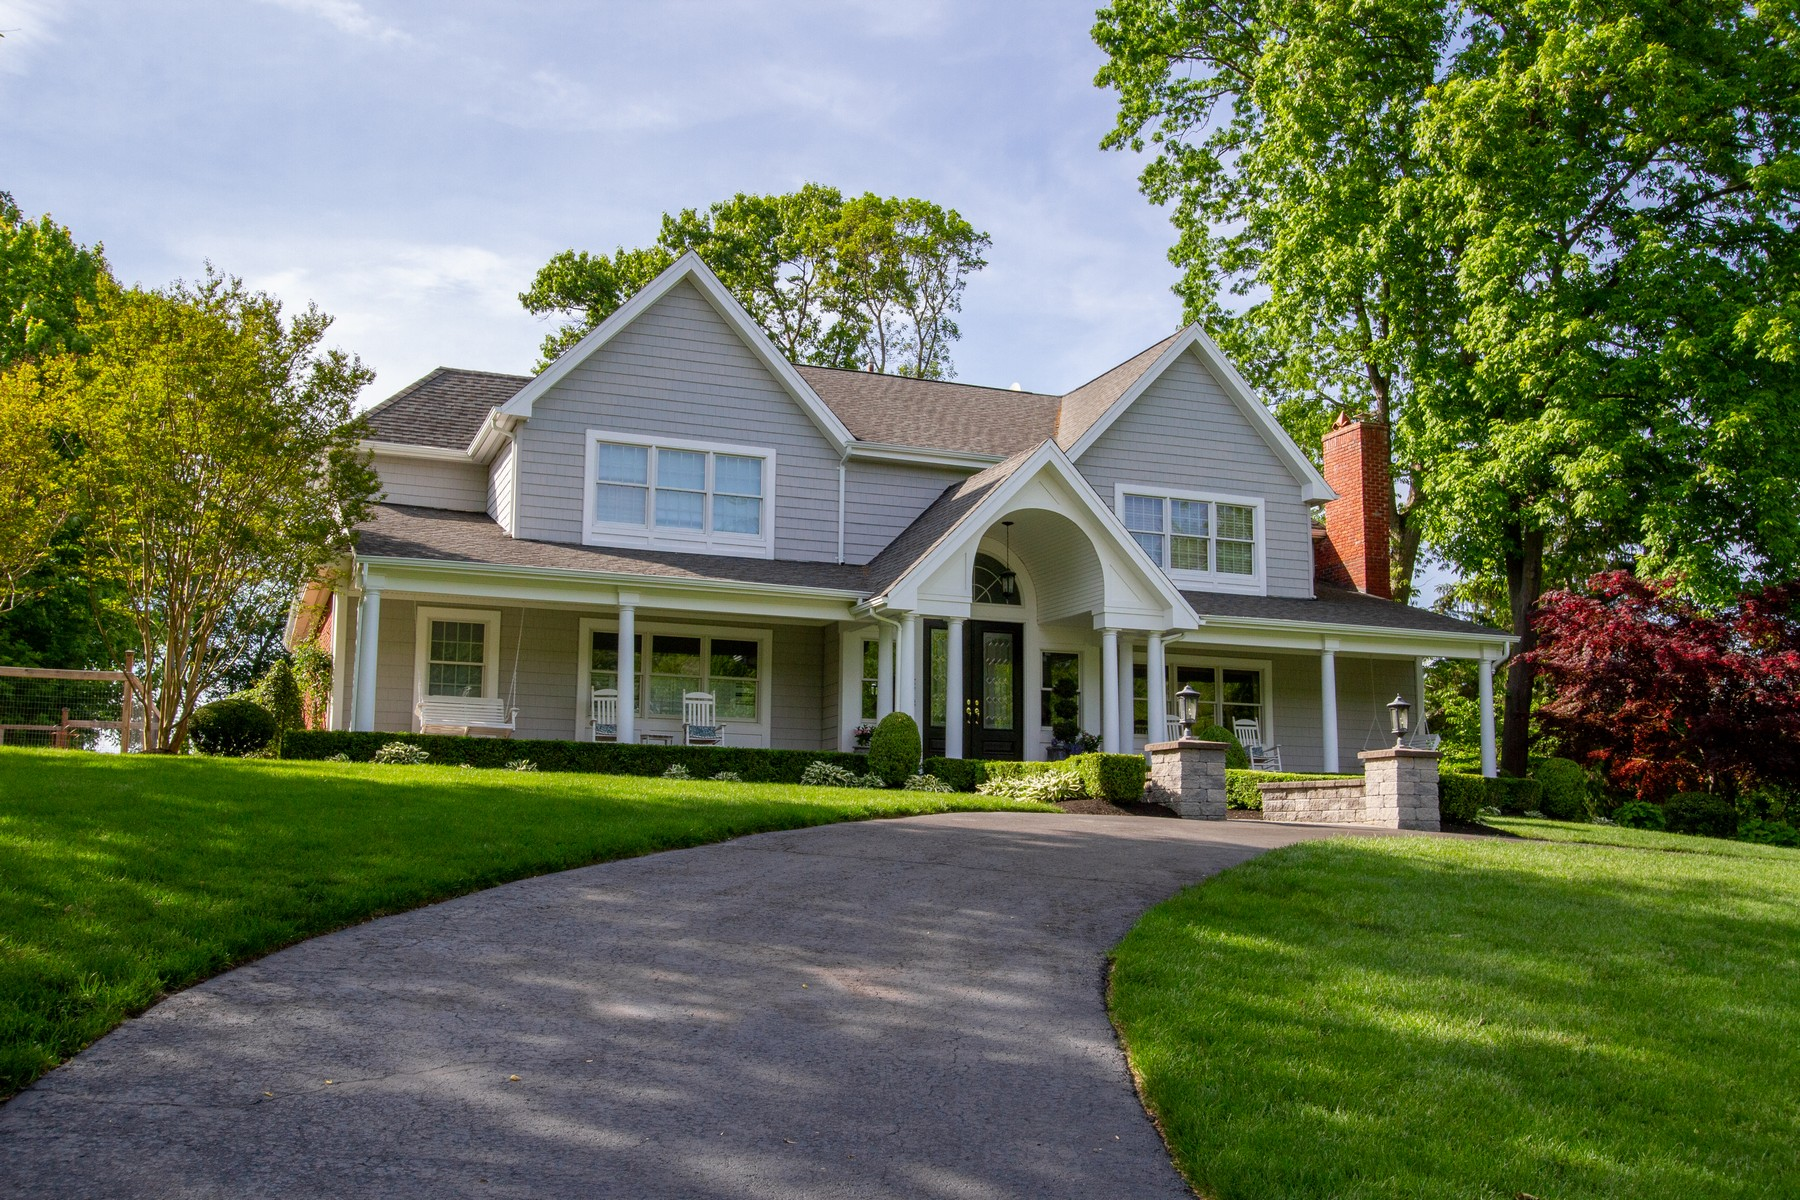 Single Family Homes for Sale at LIVE RUMSON 36 Red Coach Lane Locust, New Jersey 07760 United States